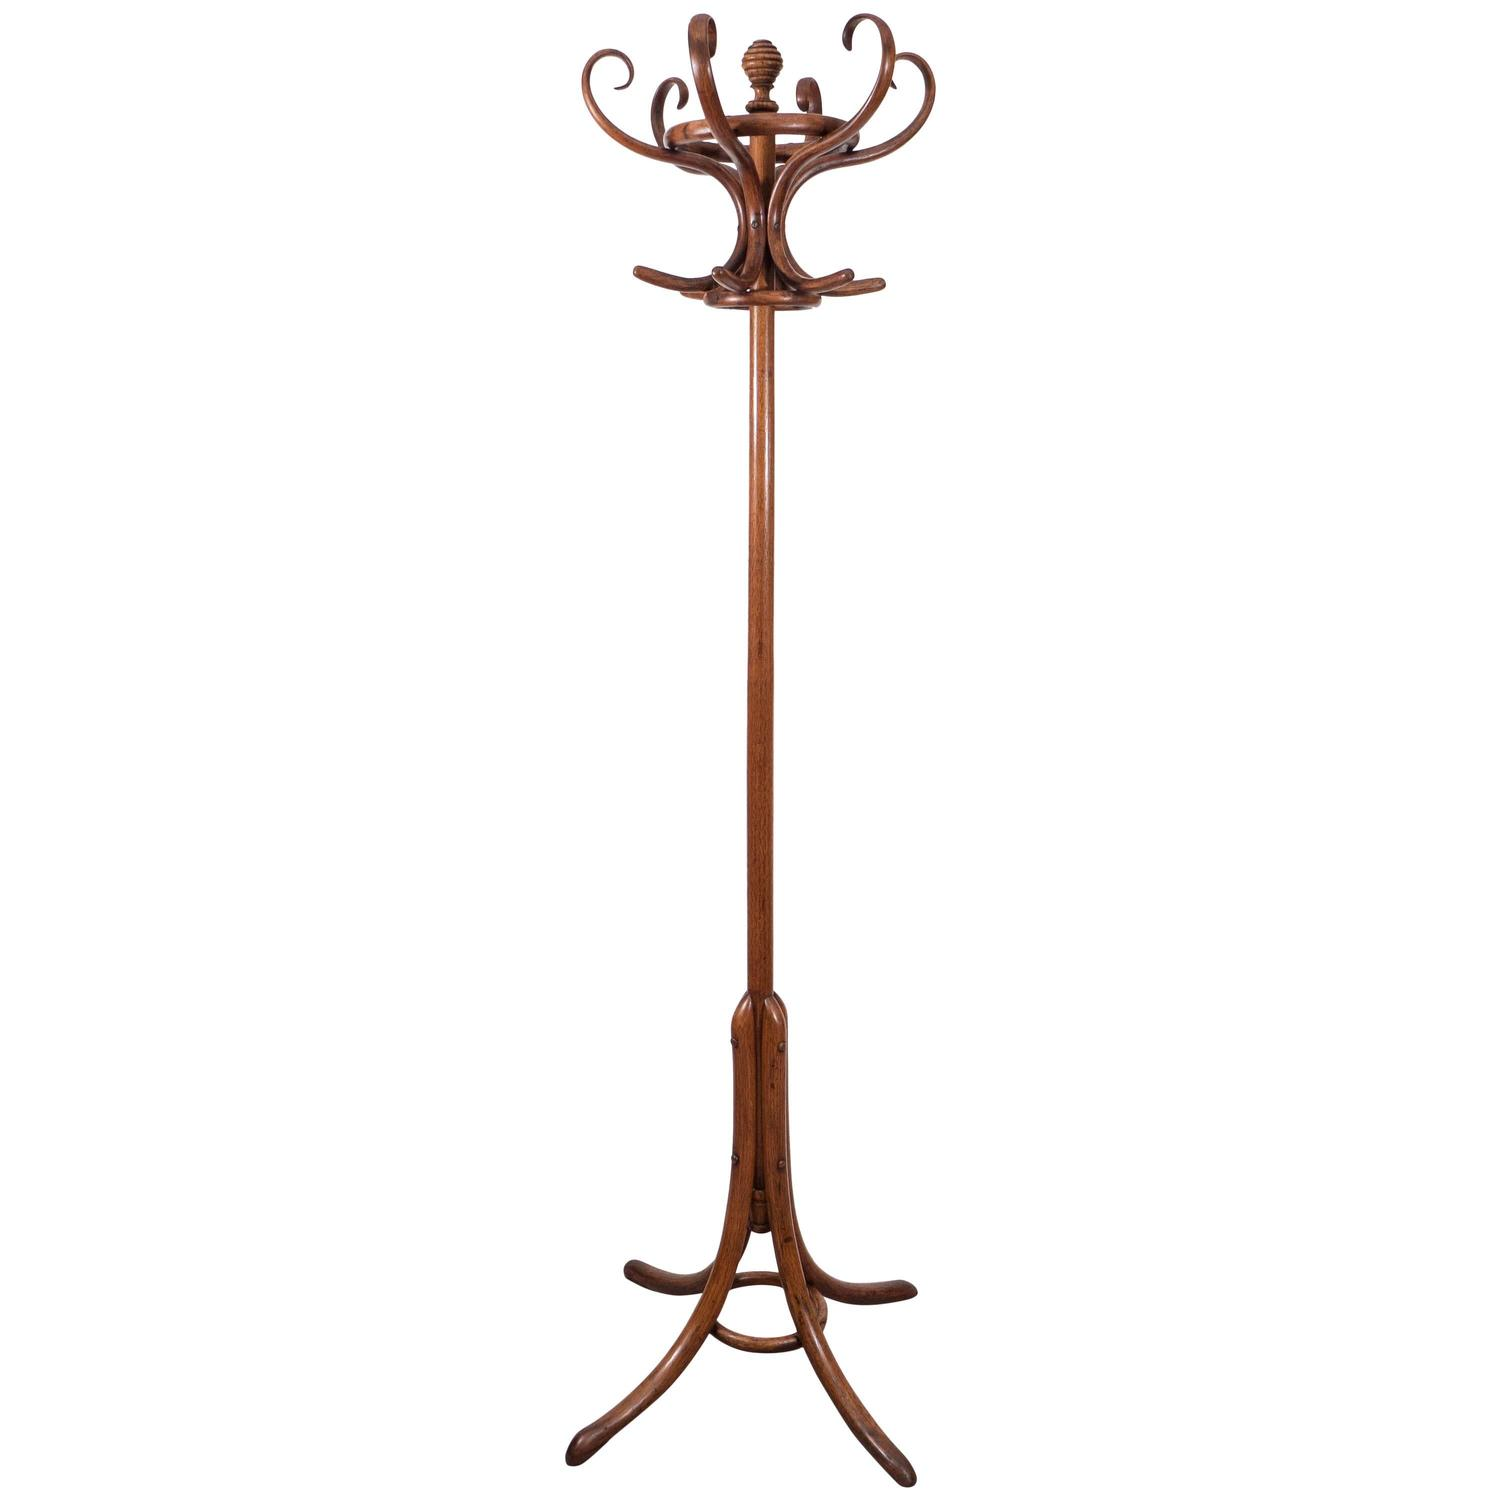 Antique Thonet Bentwood Coat Rack and Hall Tree at 1stdibs